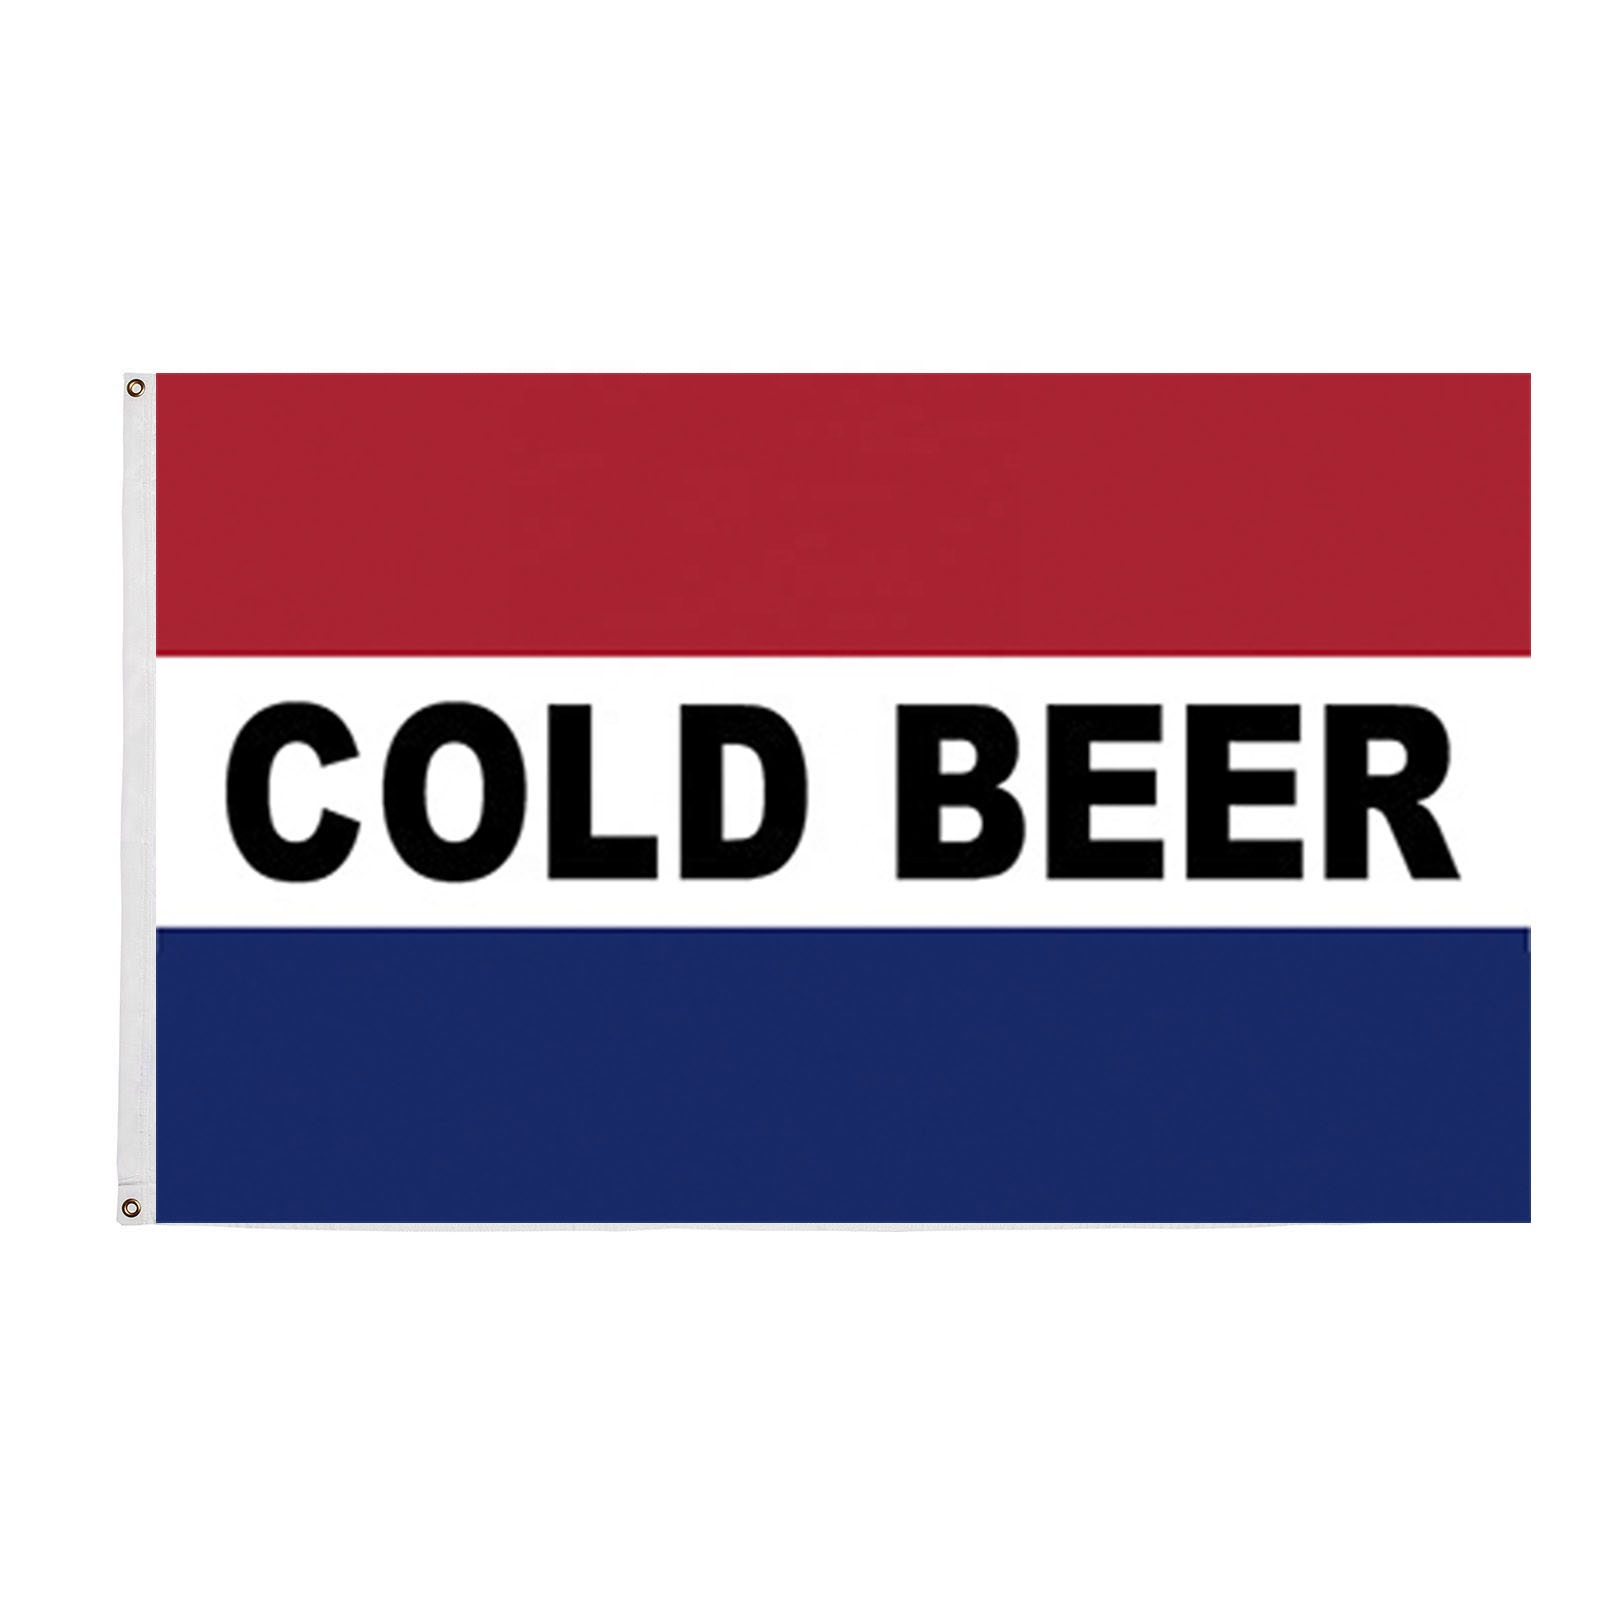 Wholesale 100% Polyester 3x5ft Stock Printed Red White Blue Cold Beer Flag